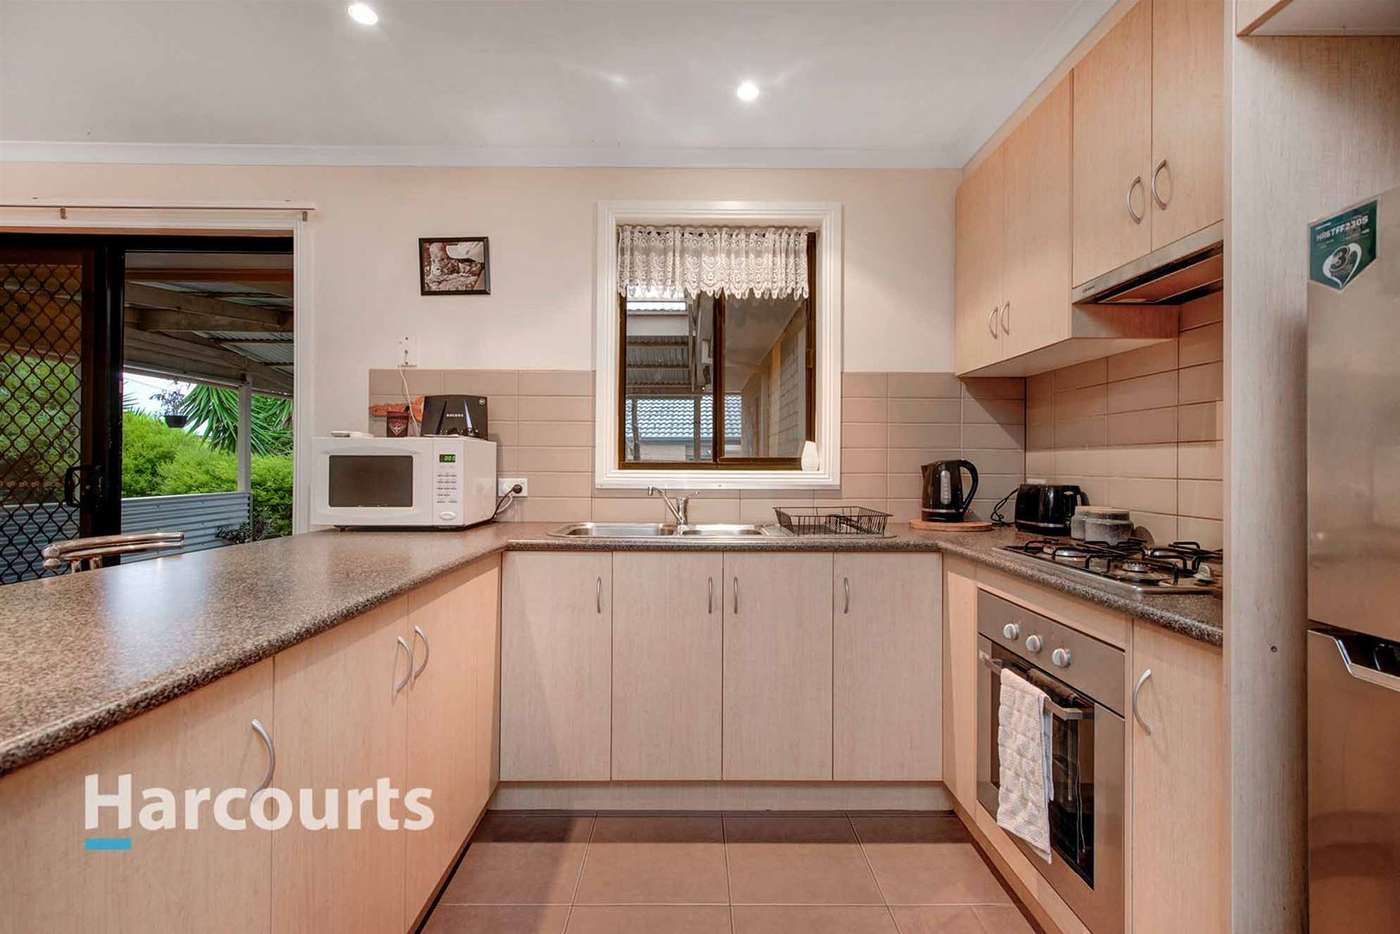 Sixth view of Homely house listing, 4 Victor Drive, Hastings VIC 3915